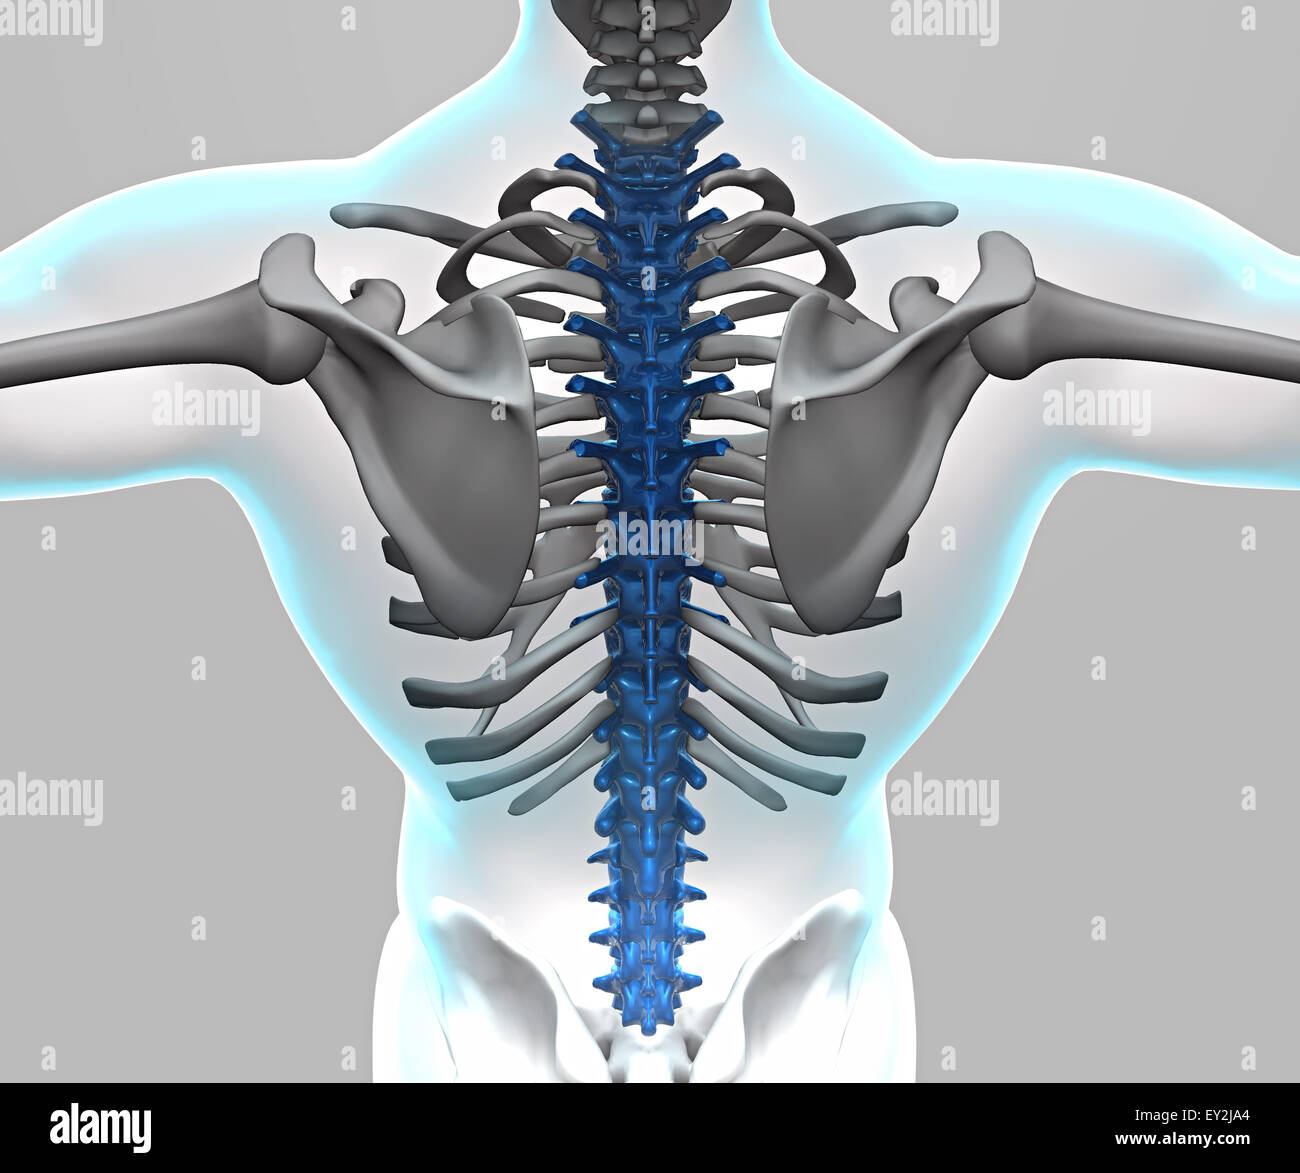 3d X ray of human body and skeleton Stock Photo: 85495484